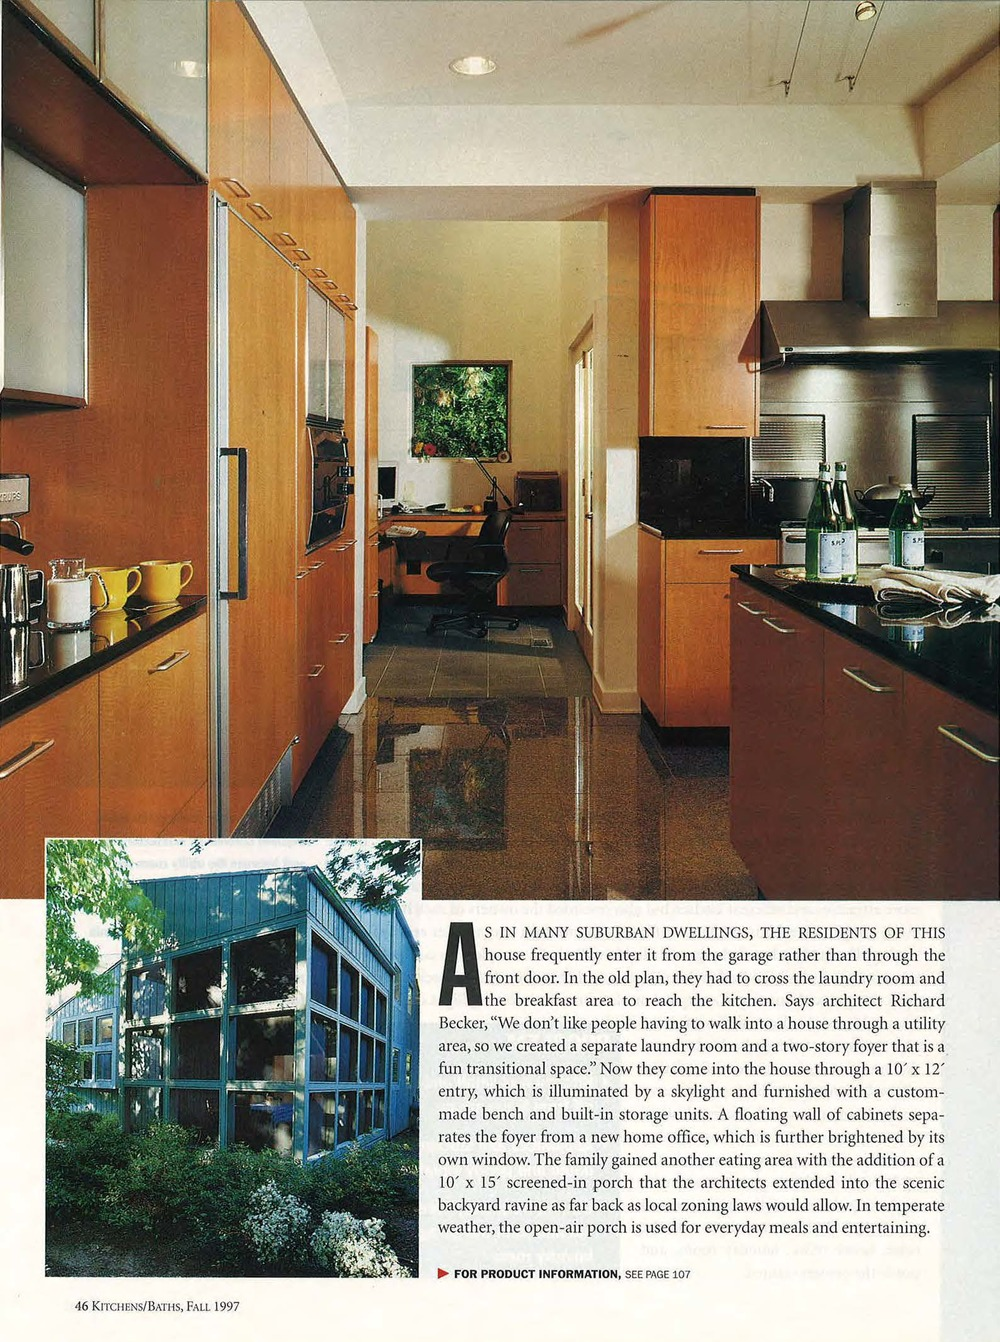 1997 House Beautiful Kitchens & Baths _Page_6.jpg